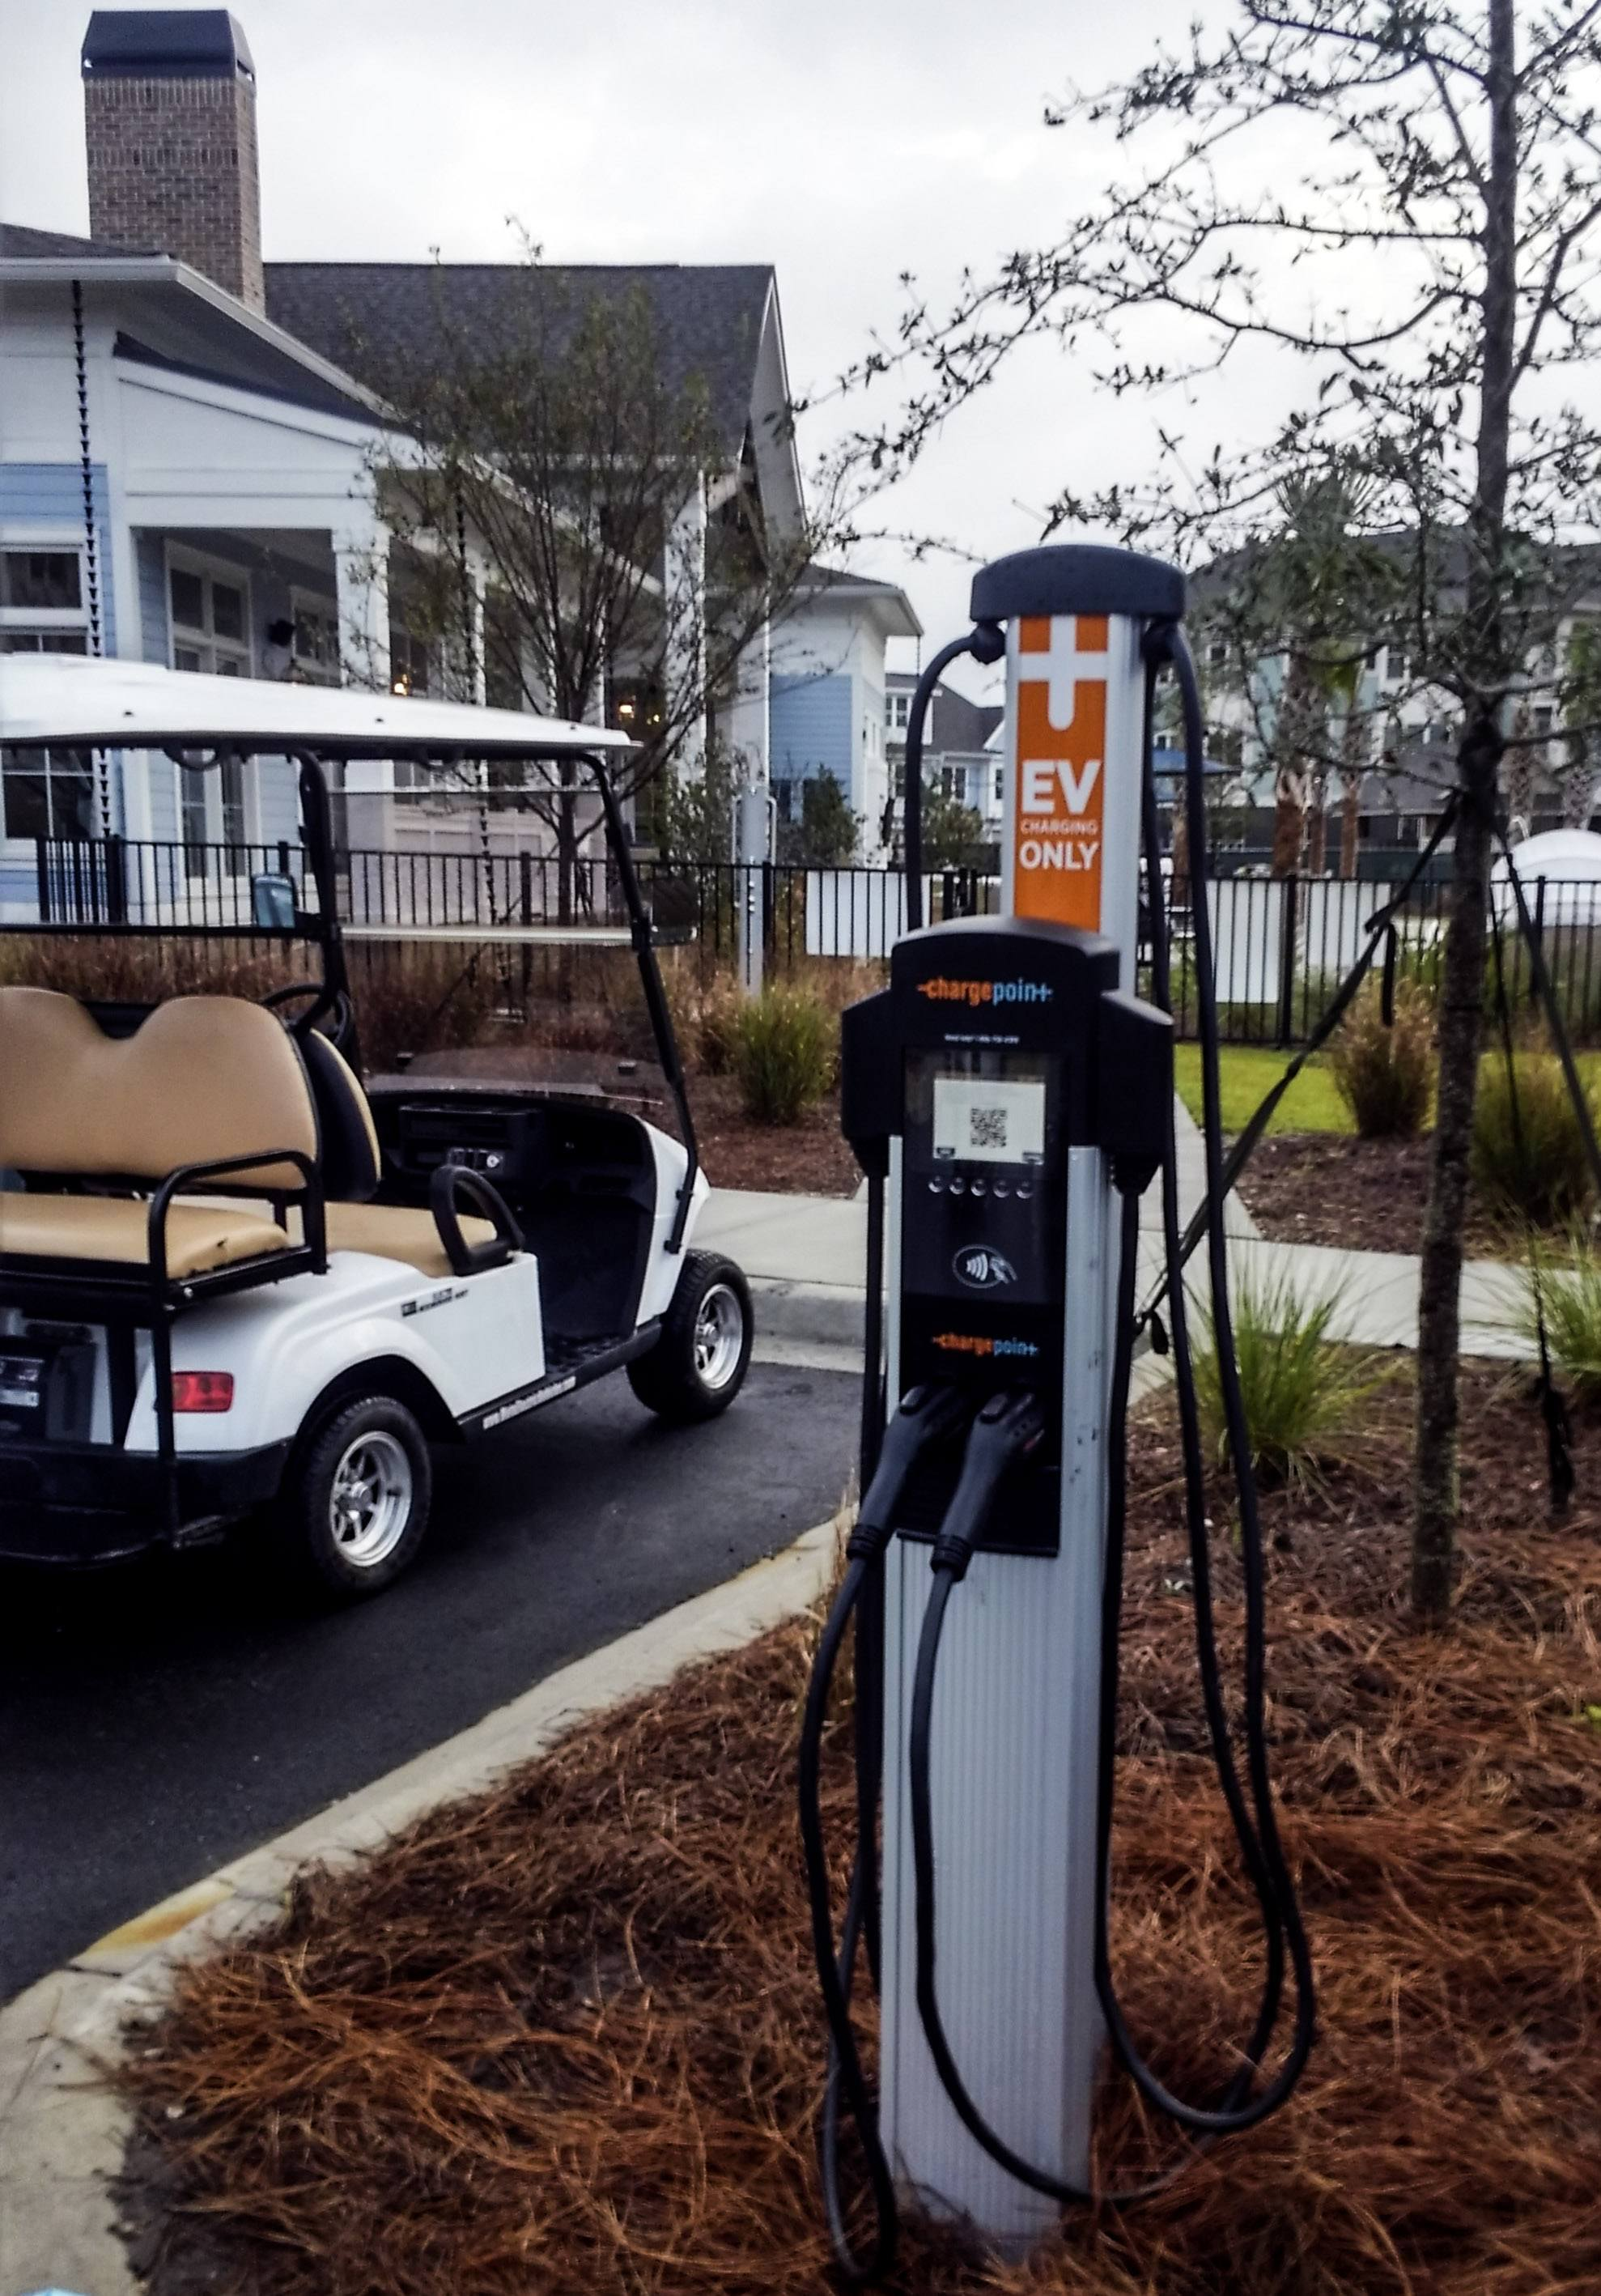 E;ectrical Vehicle (EV) Charging Station